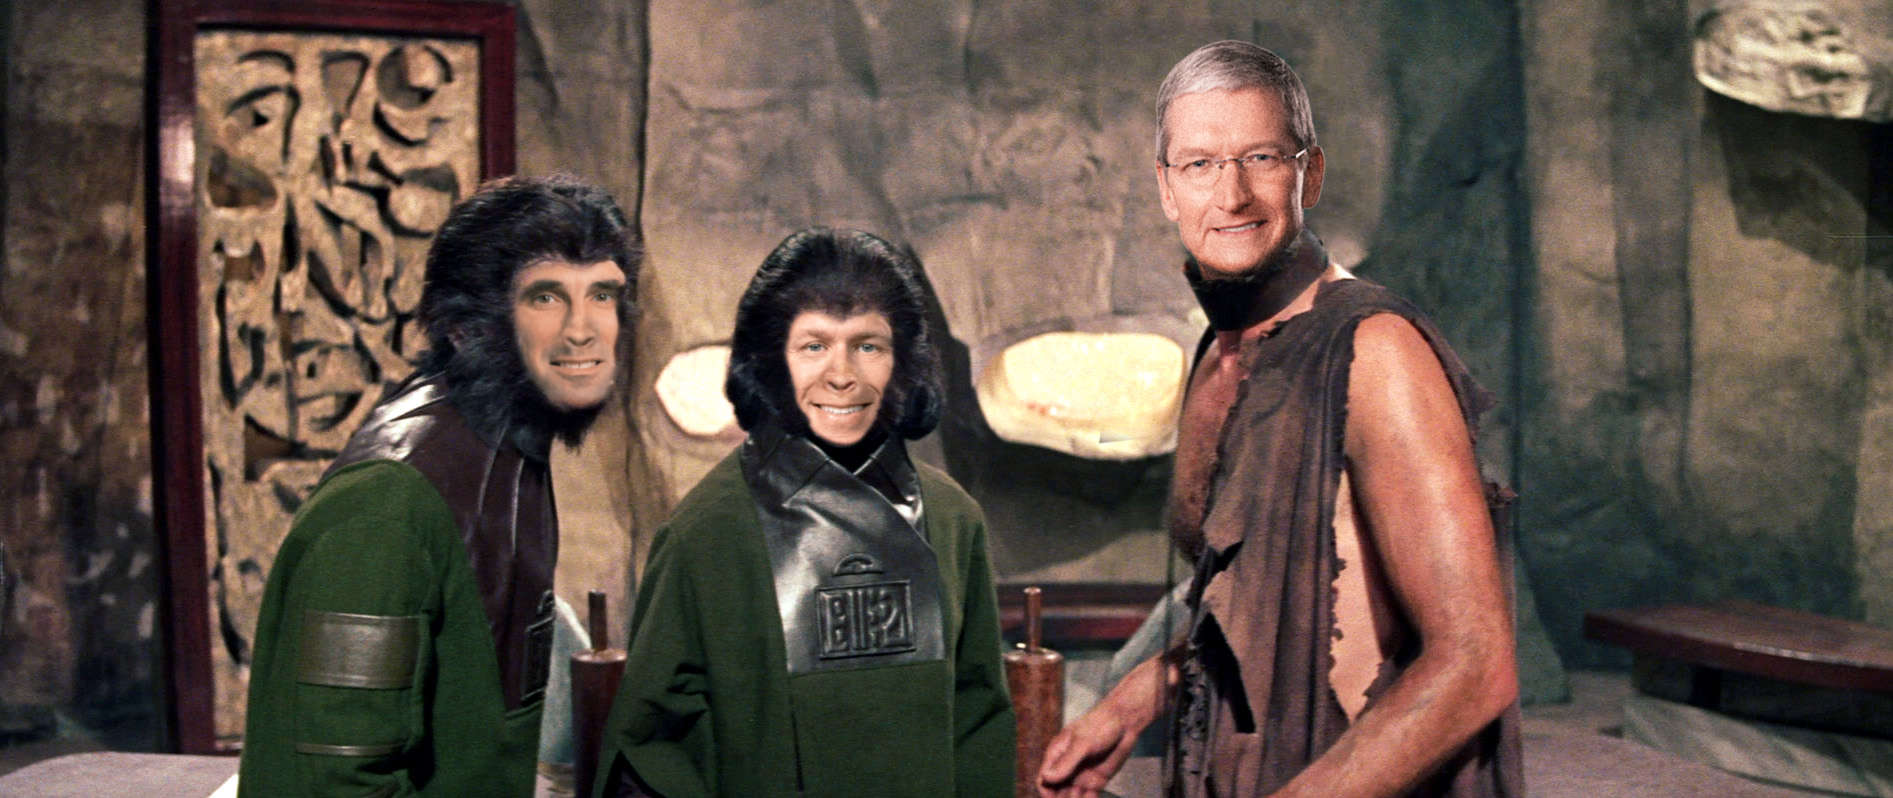 planet of the apes with tim cook